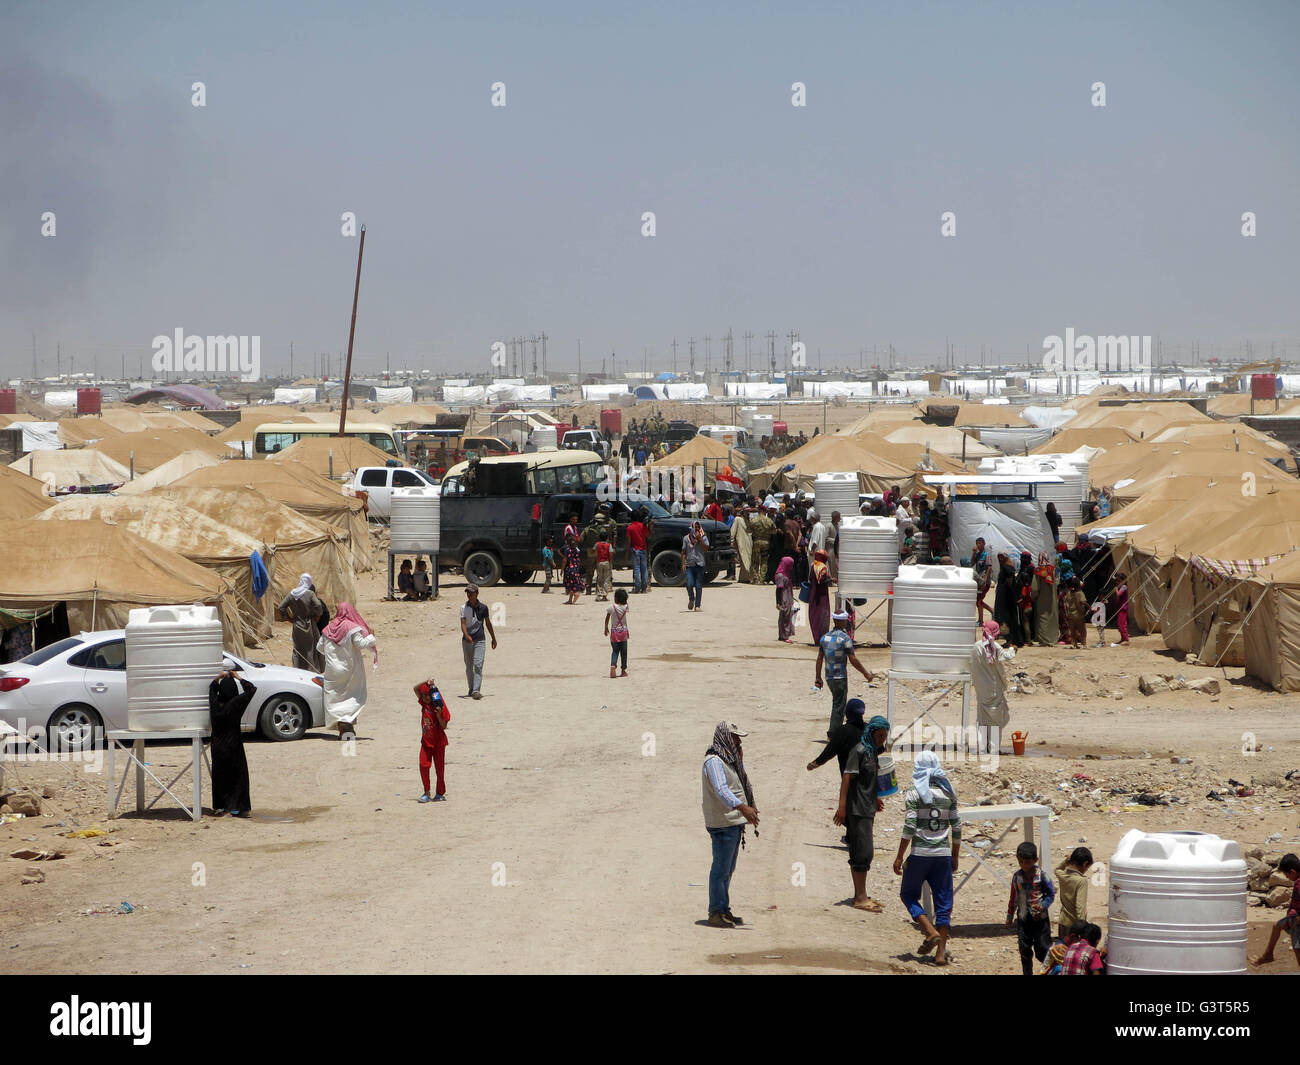 Fallujah. 14th June, 2016. People walk outside their tents in a camp for the Internally Displaced People (IDPs) - Stock Image